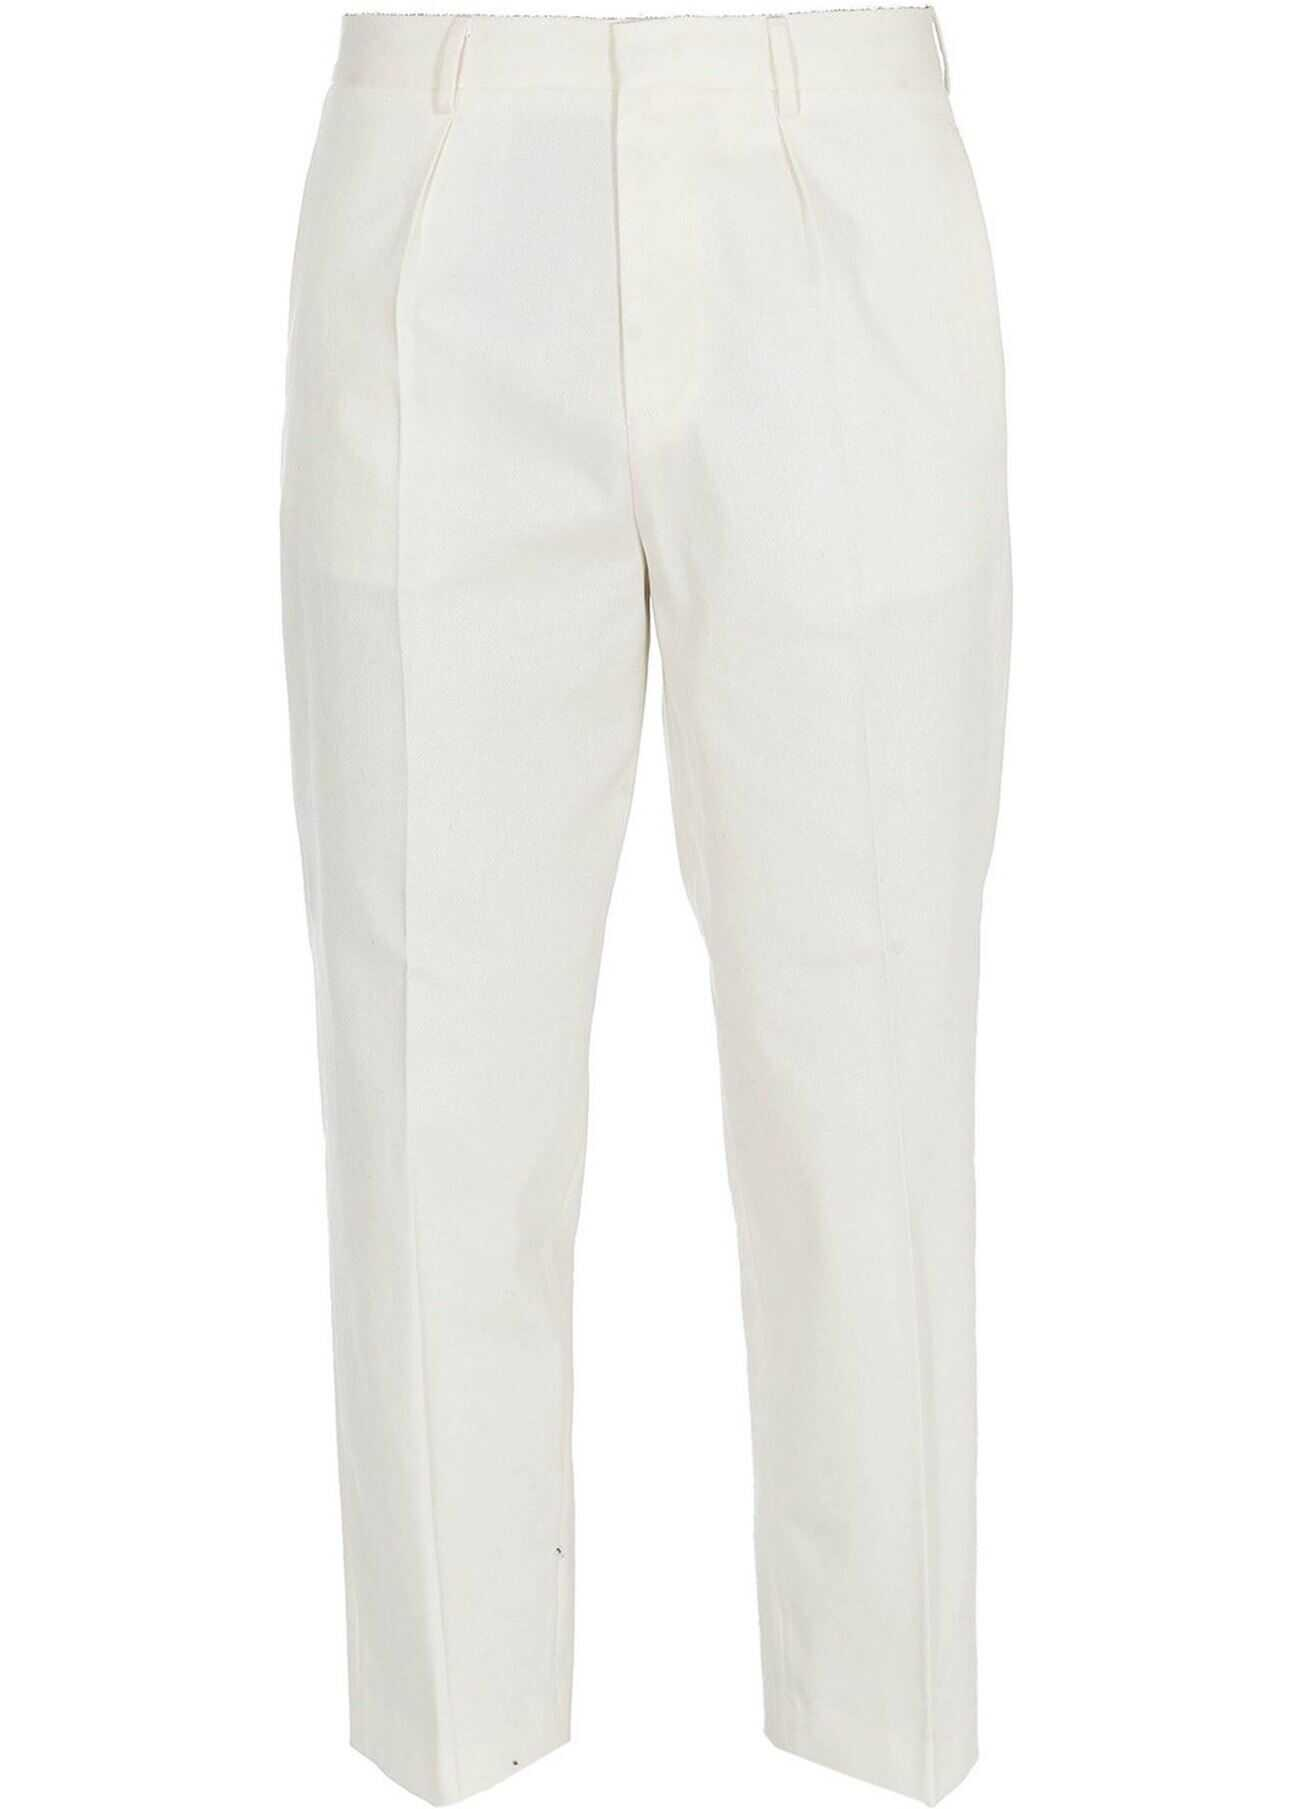 GCDS Twill Cotton Cropped Trousers In White White imagine